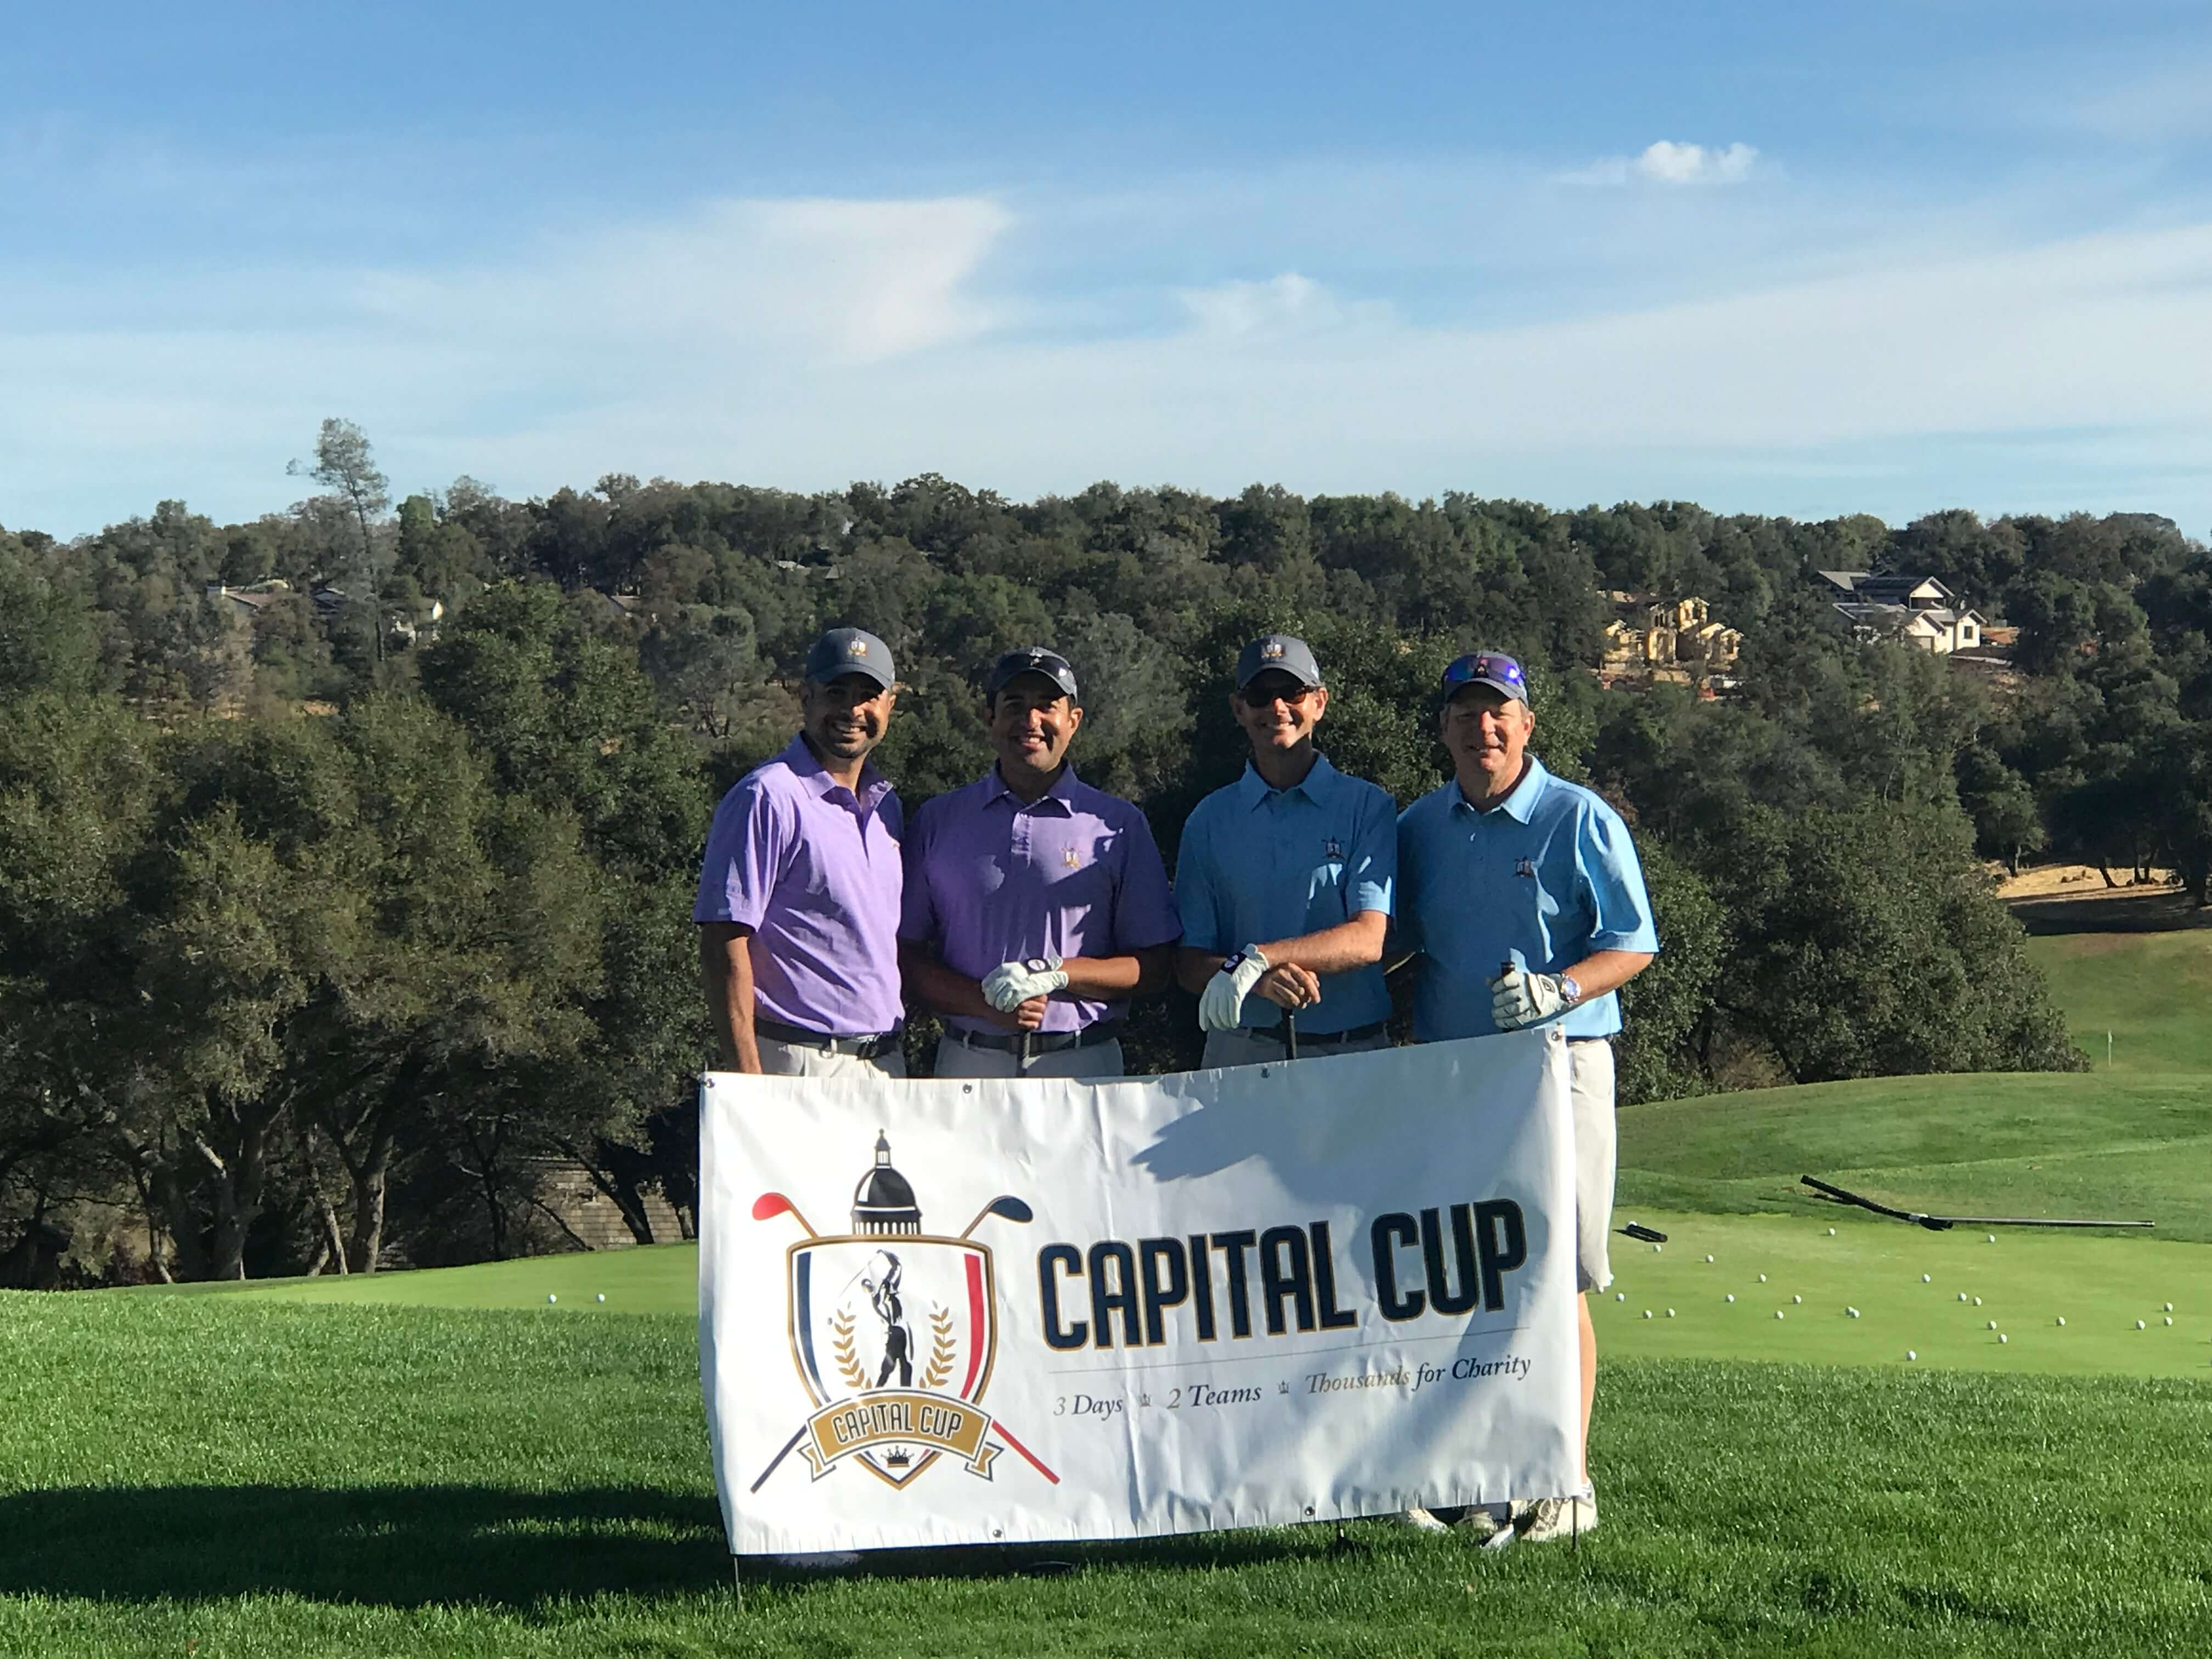 Capital Cup golfers